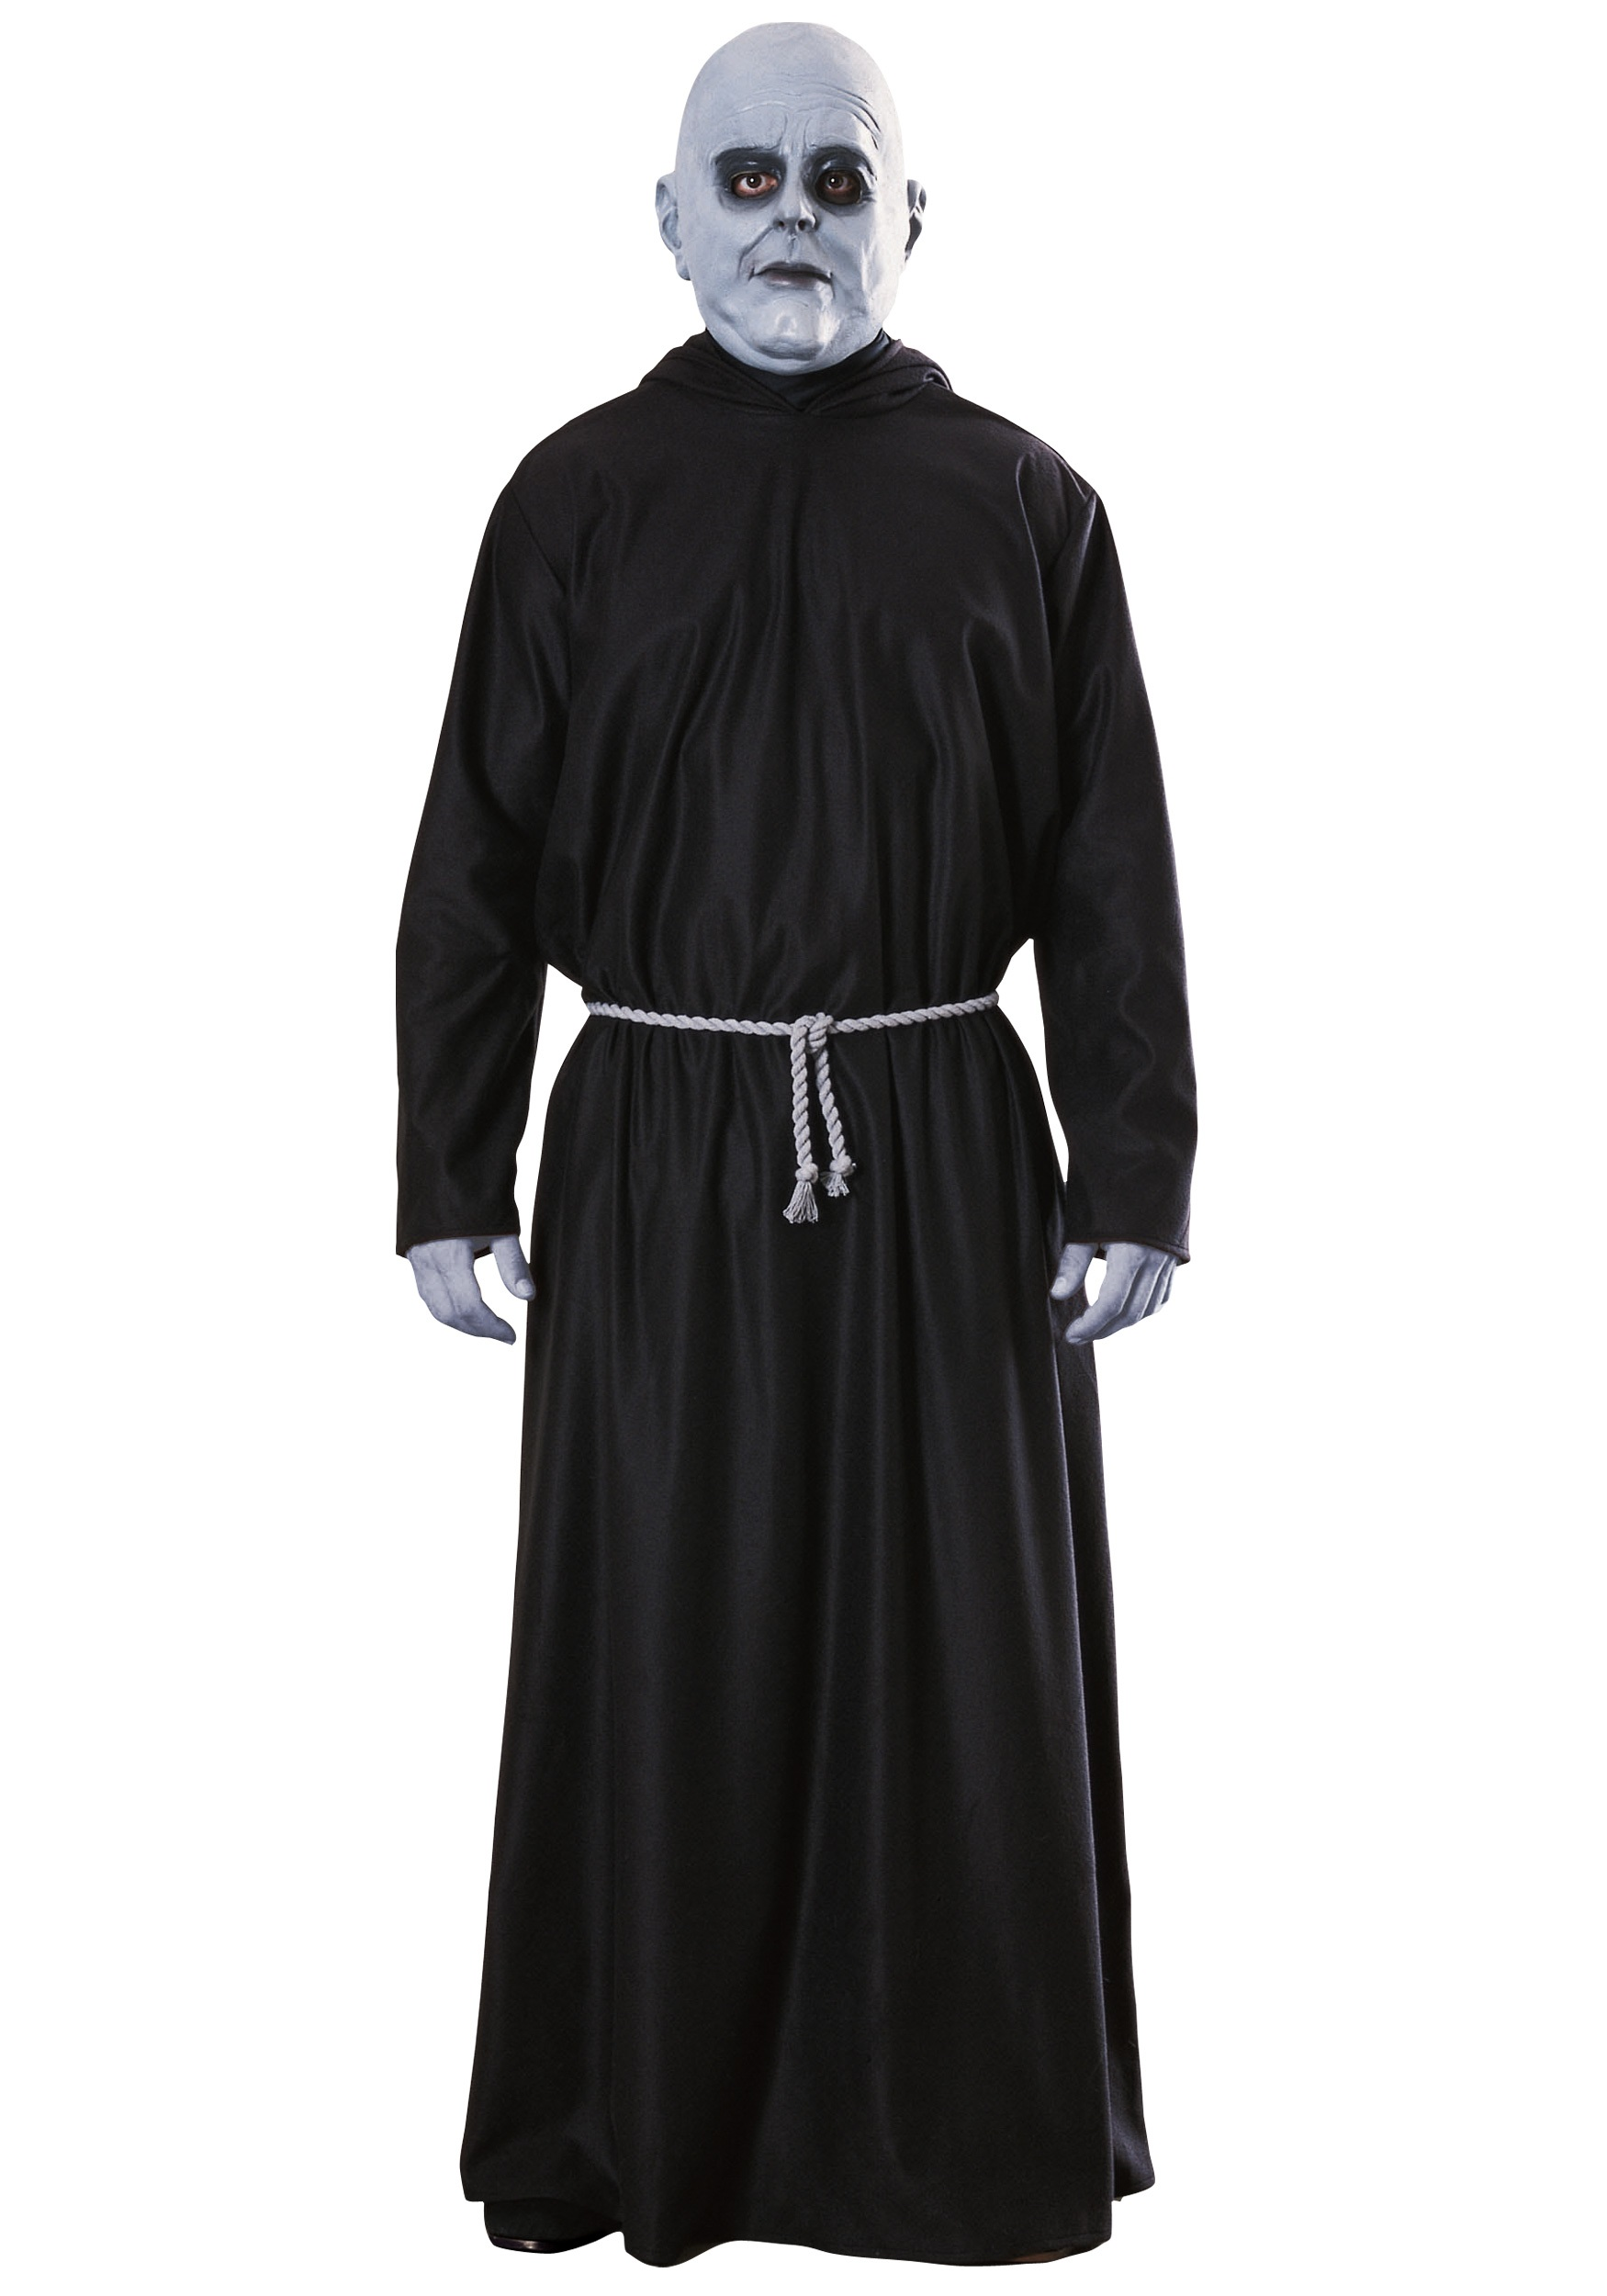 Uncle fester the addams family pinterest - Uncle Fester Costume